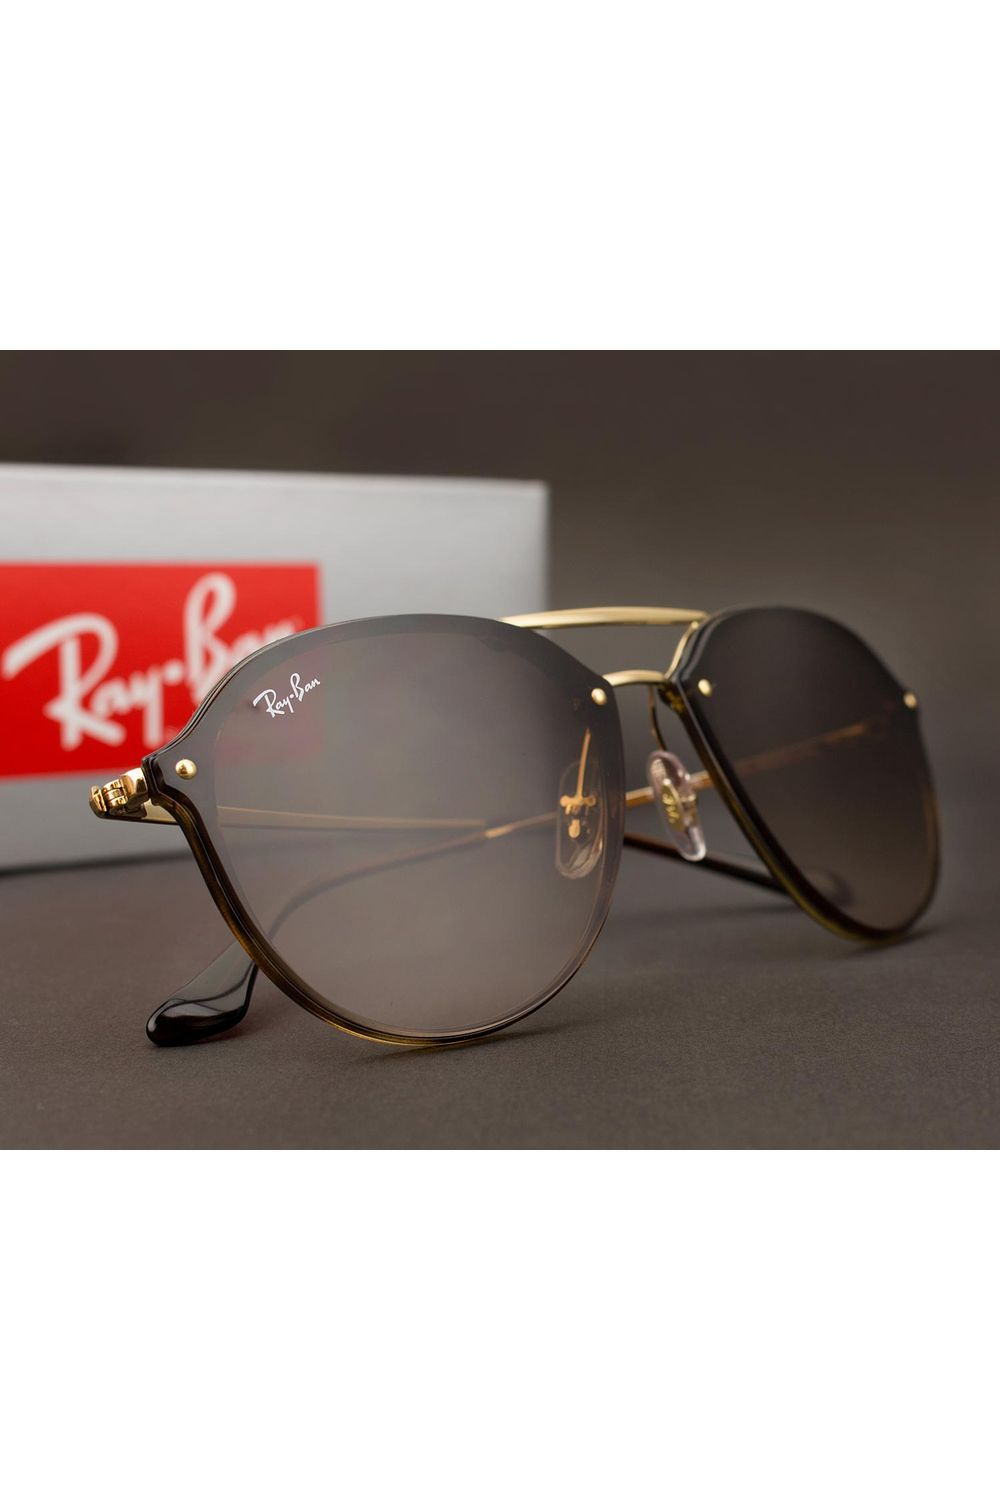 3eb9eff59cf86 Óculos de Sol Ray Ban Blaze Double Bridge RB4292N 710 13-62 ...